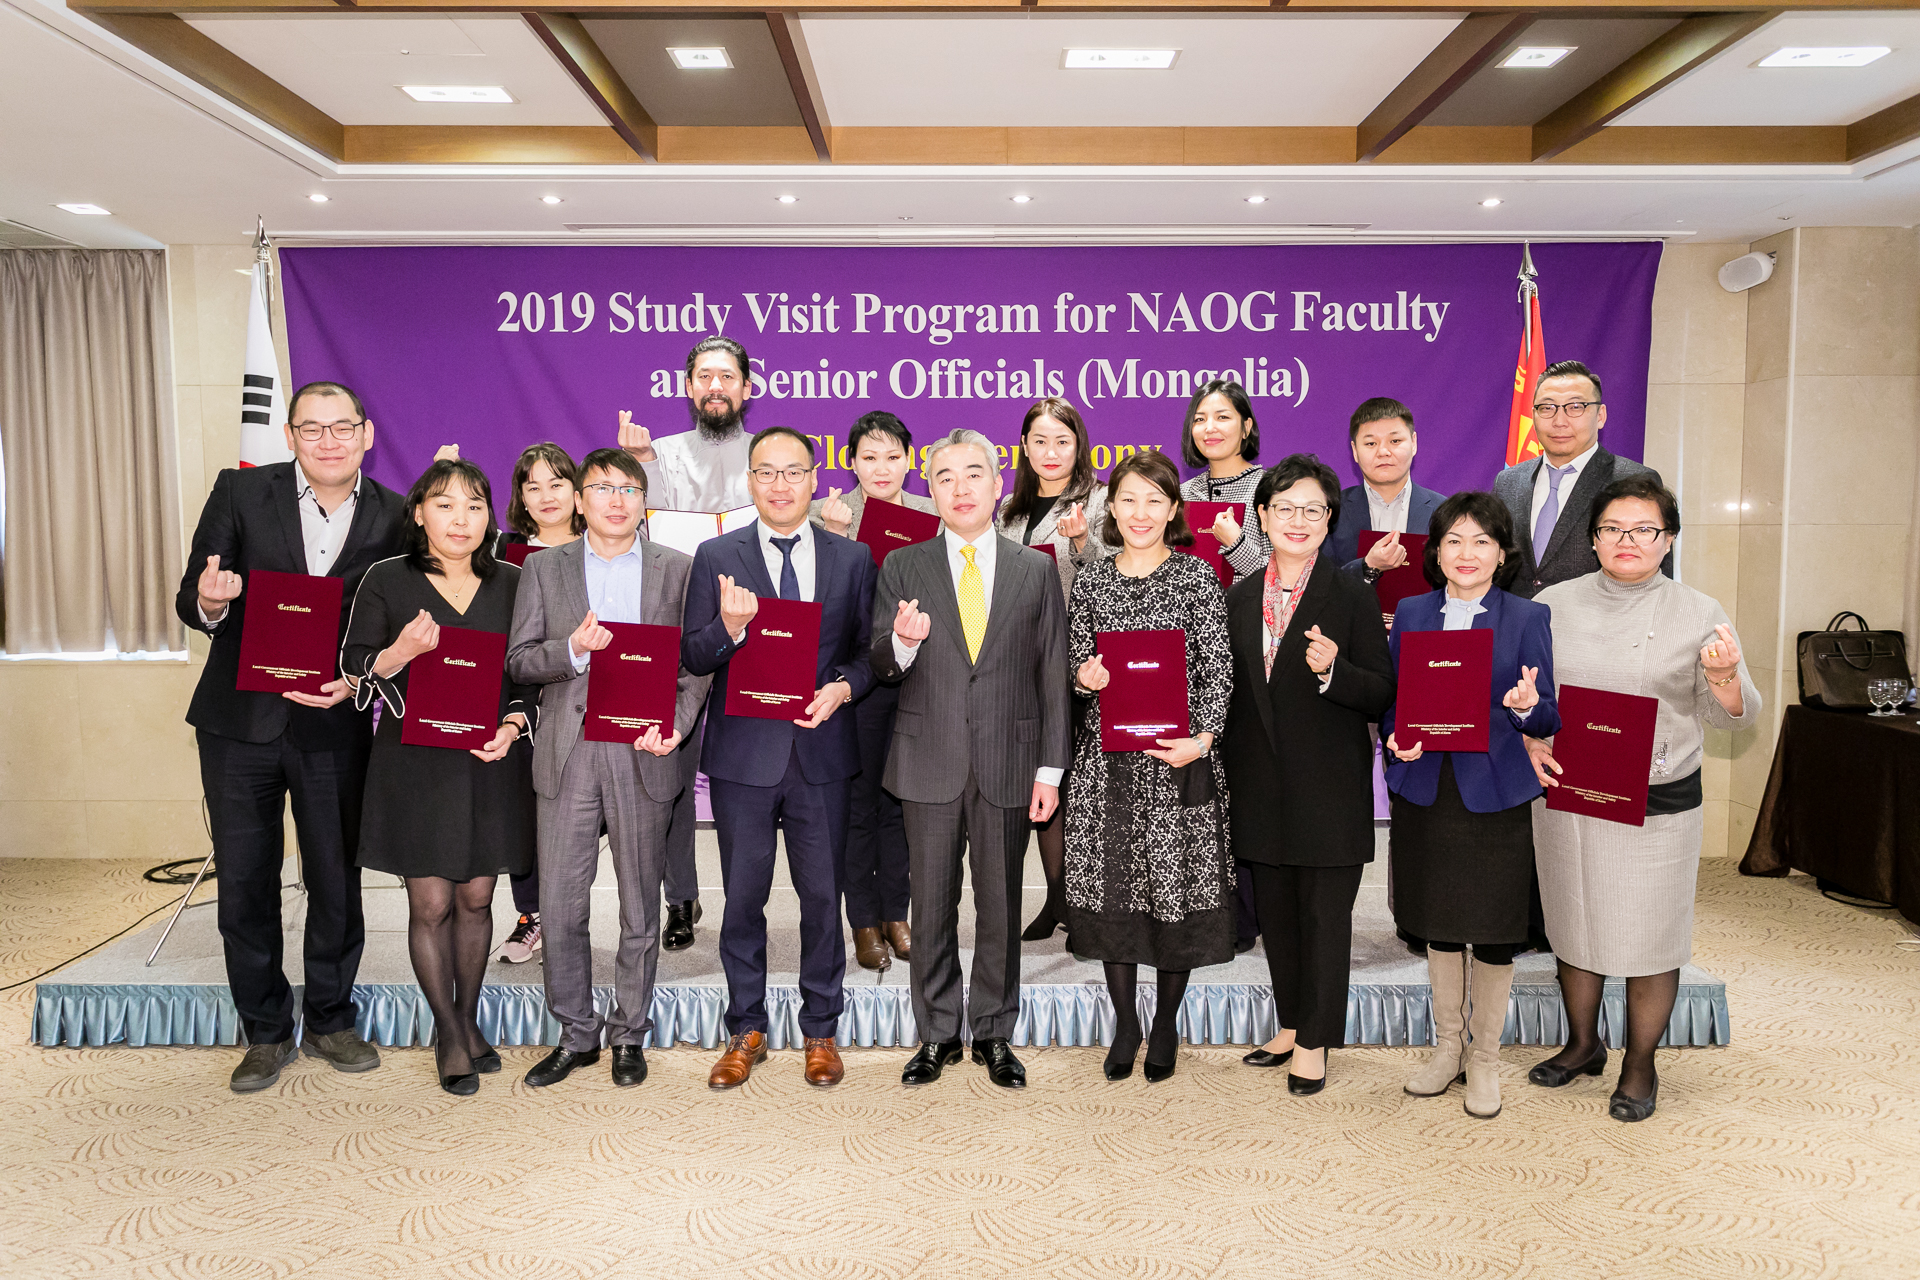 NAOG faculty and senior officials from Mongolia completes the customized program.